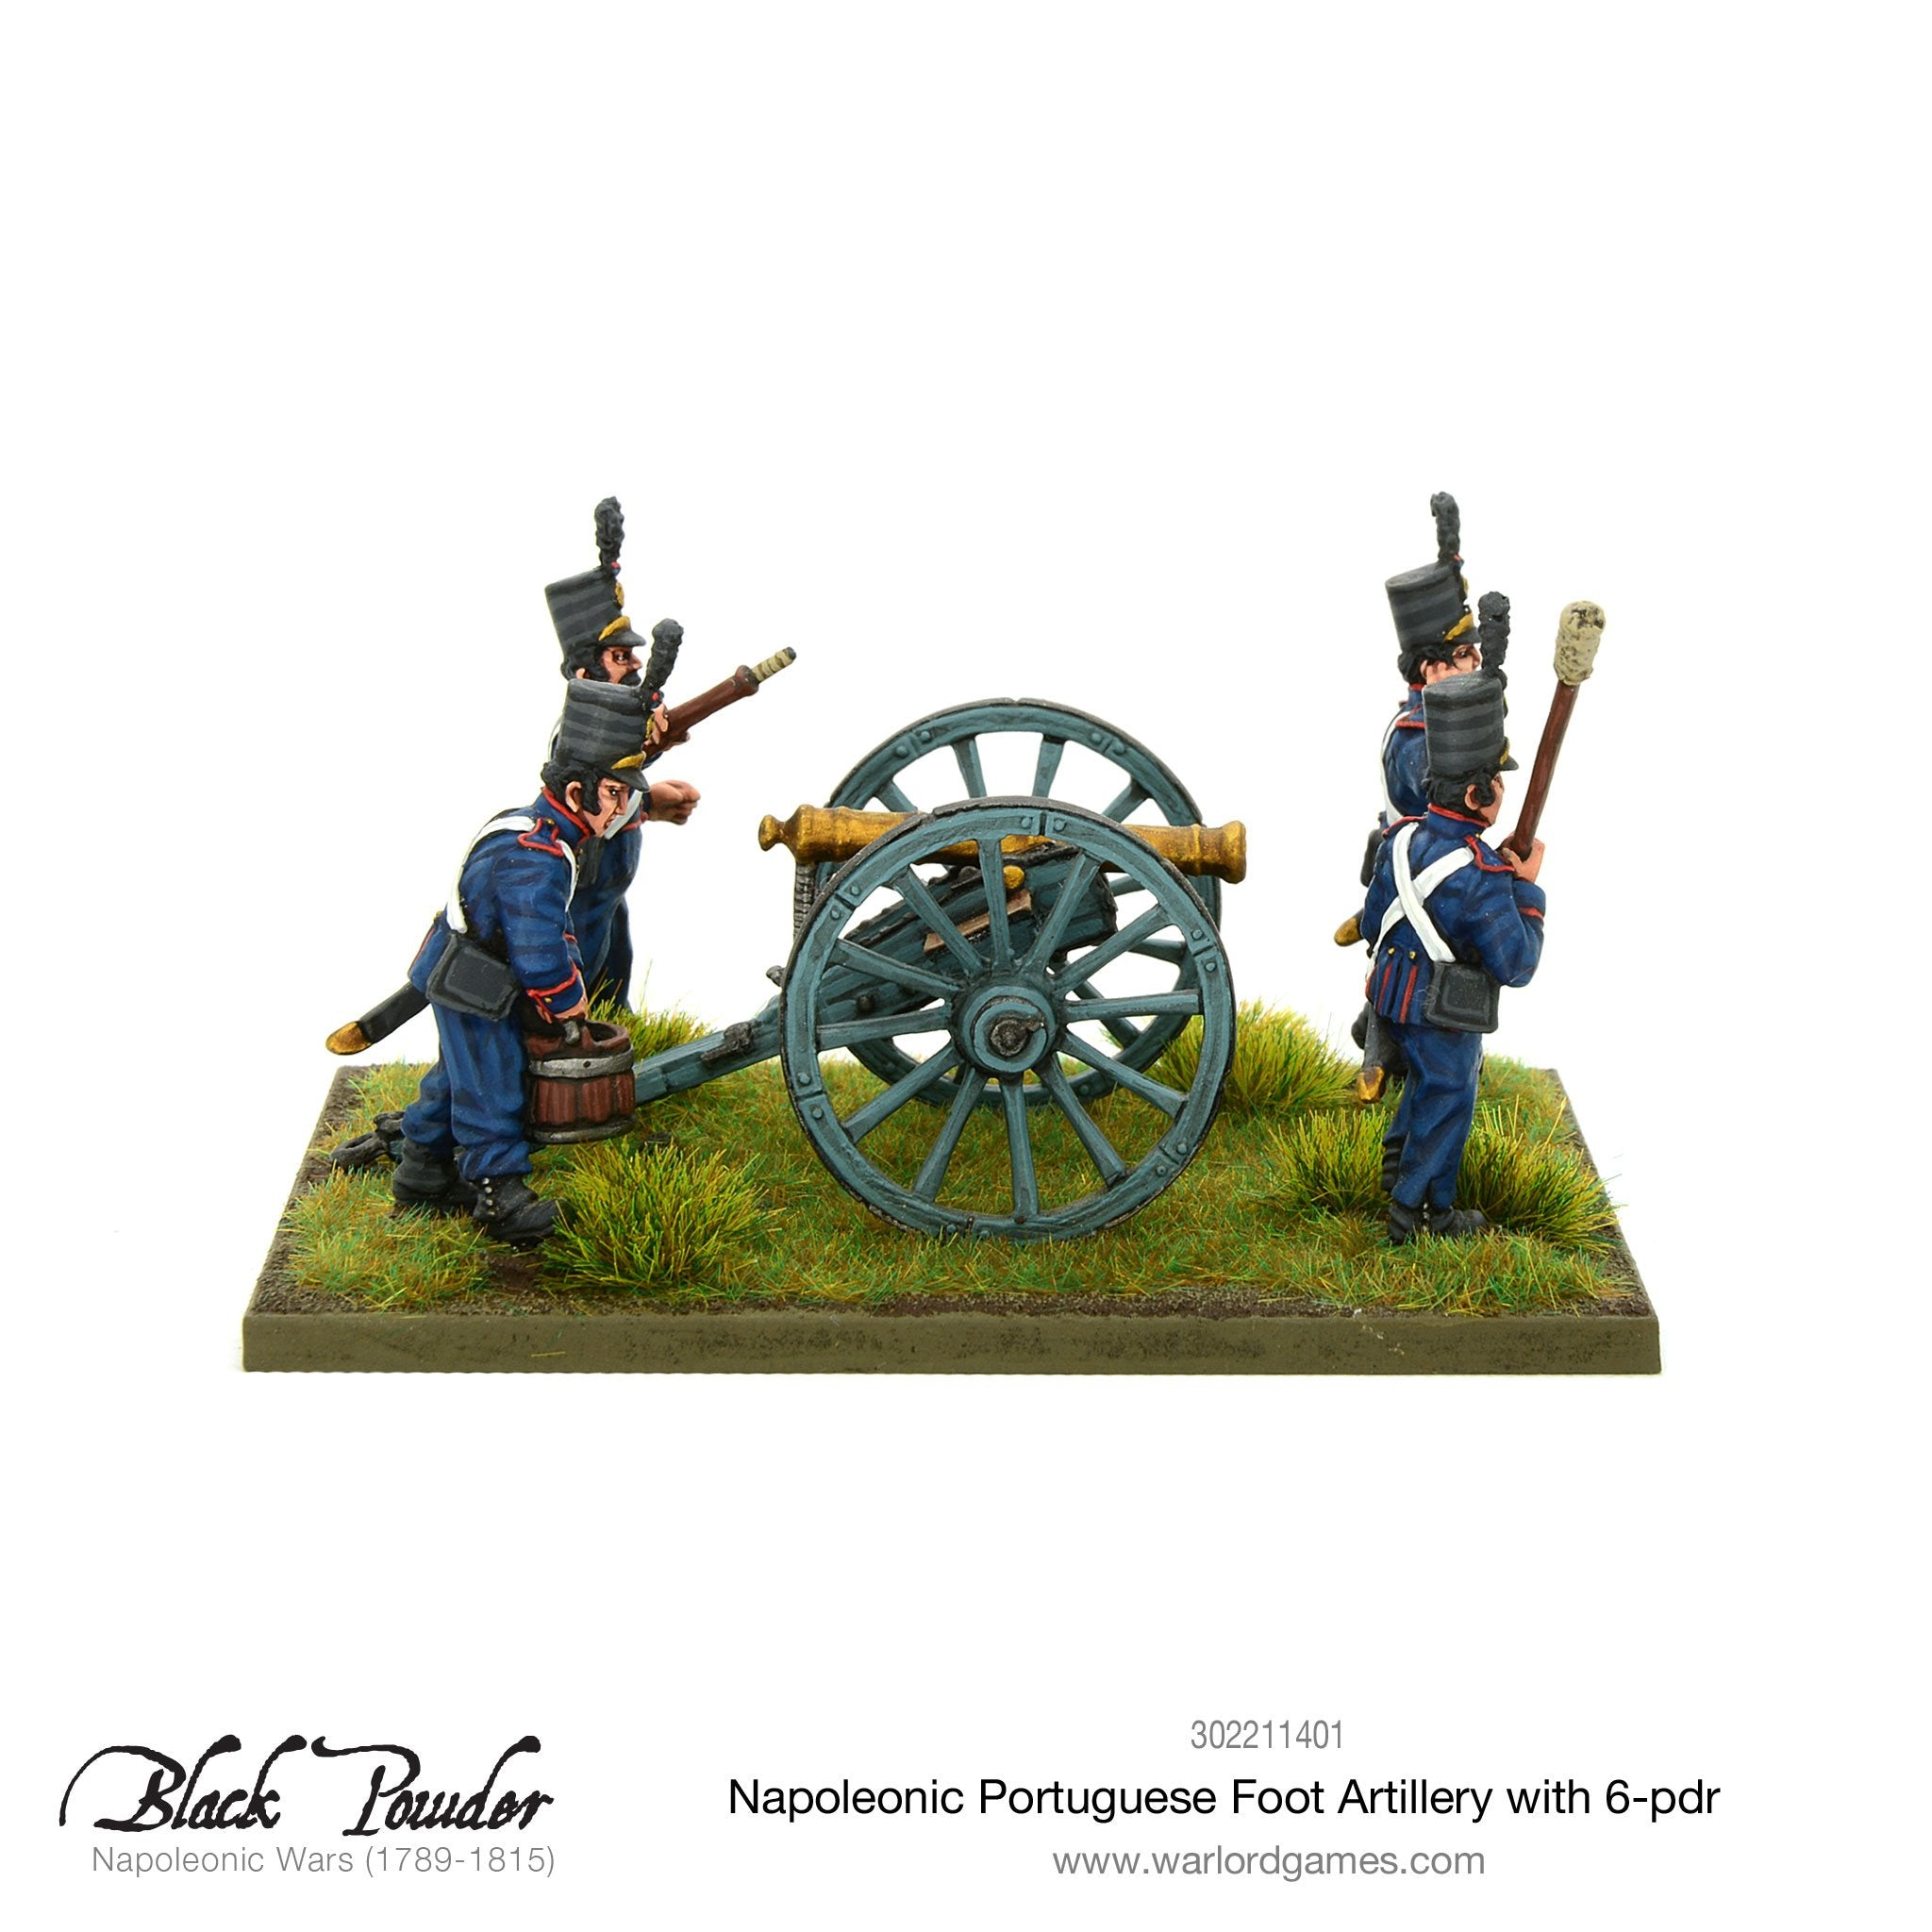 Napoleonic Portuguese Foot Artillery with 6-pdr